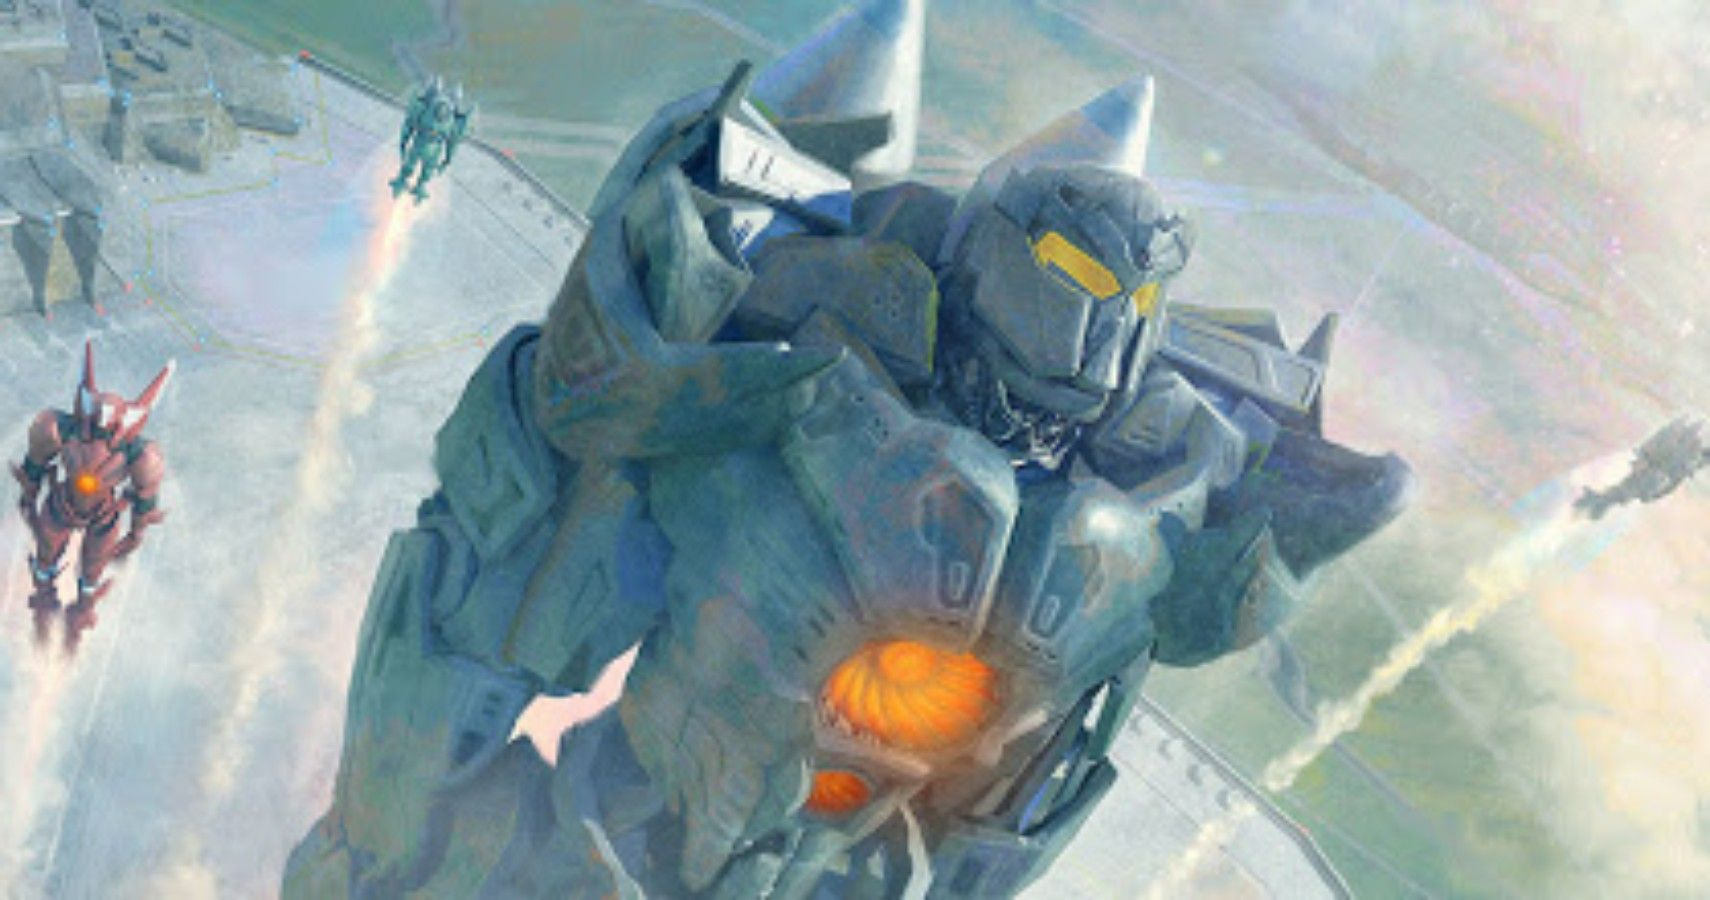 10 Incredible Pieces Of Pacific Rim Concept Art Screenrant Zerochan has 30 kaiju anime images, fanart, and many more in its gallery. pacific rim concept art